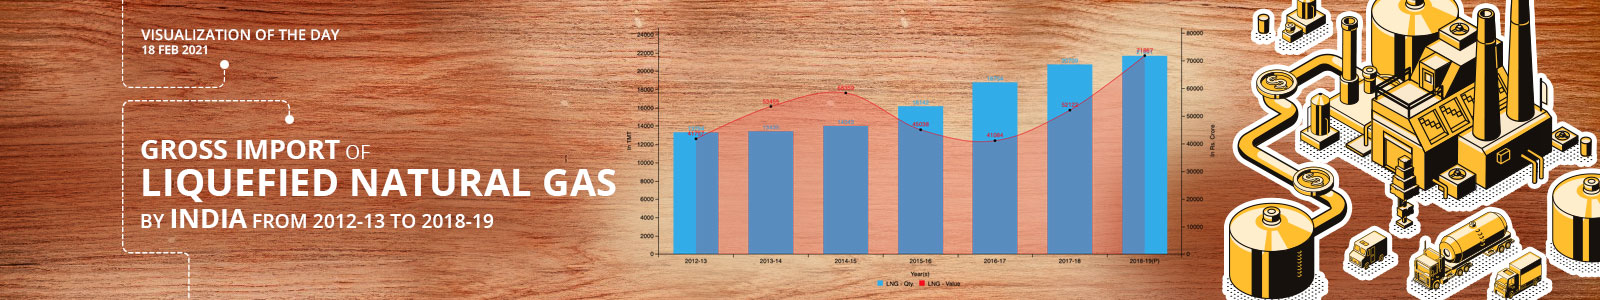 Gross Import of Liquefied Natural Gas by India from 2012-13 to 2018-19